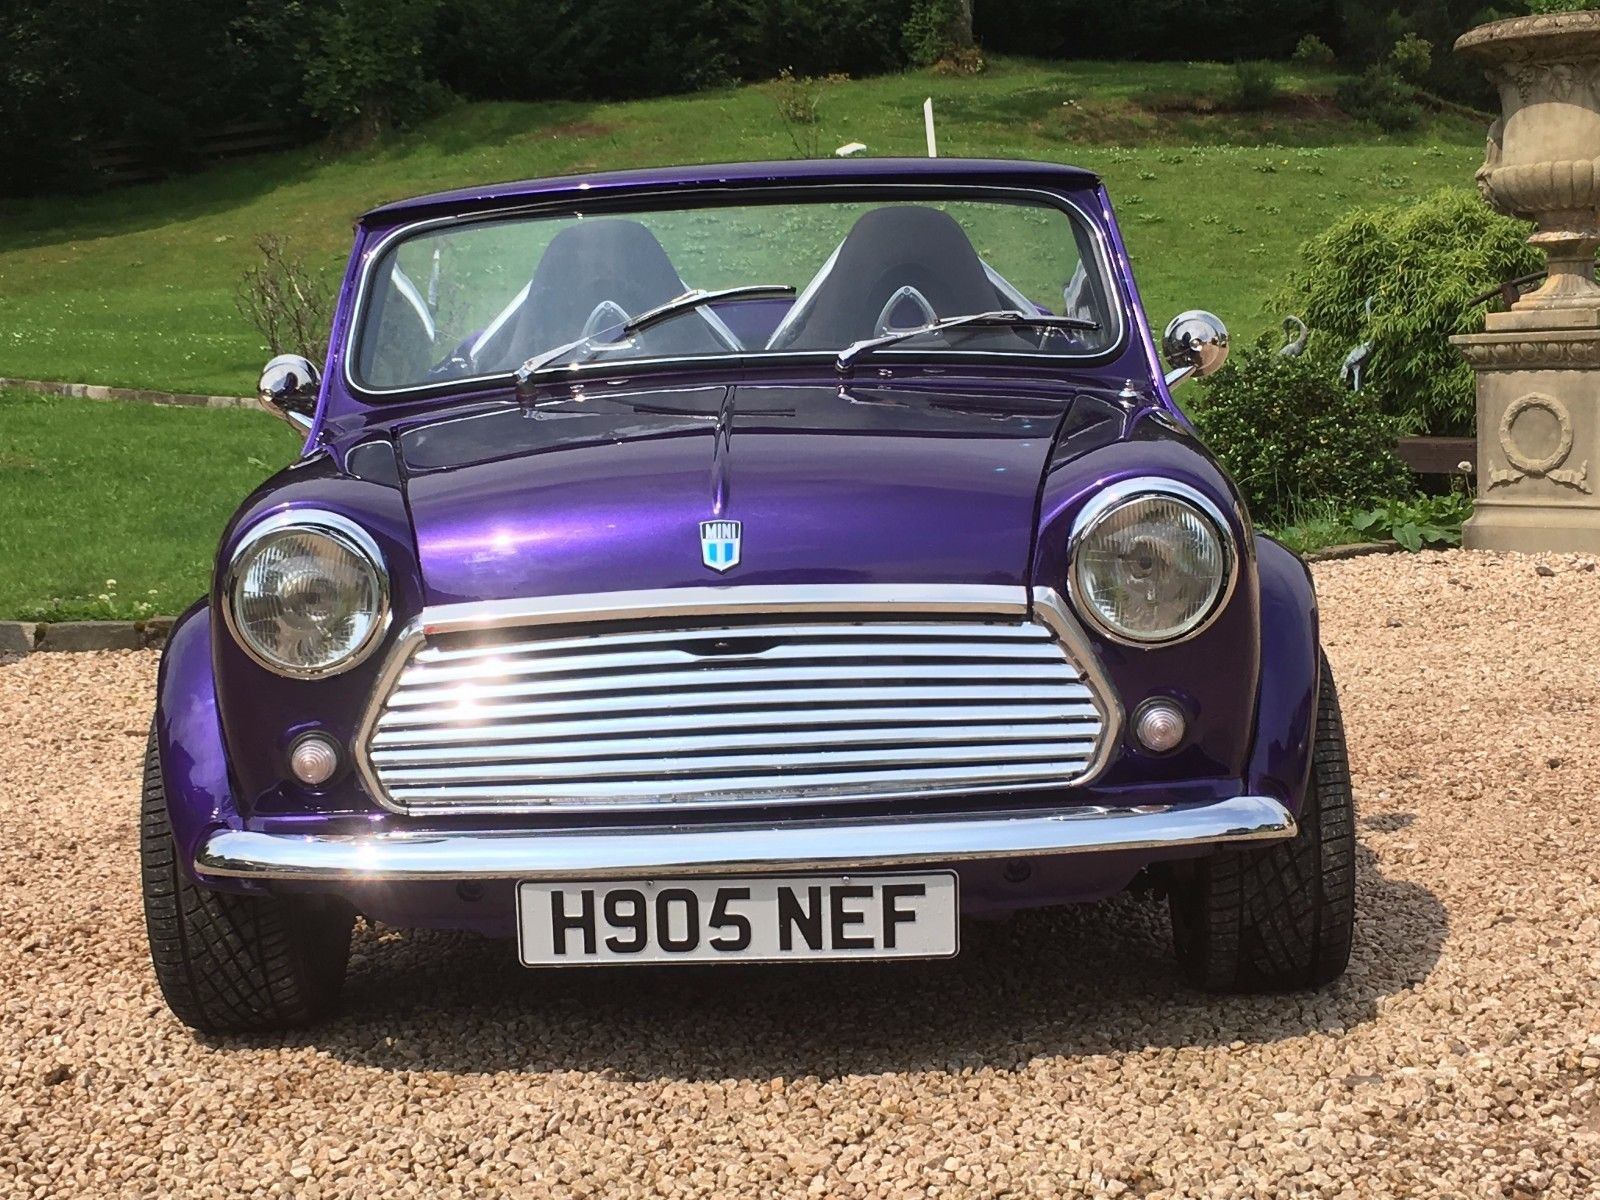 eBay: FABULOUS CLASSIC MINI BANHAM ROADSTER WITH 1275GT ENGINE ...